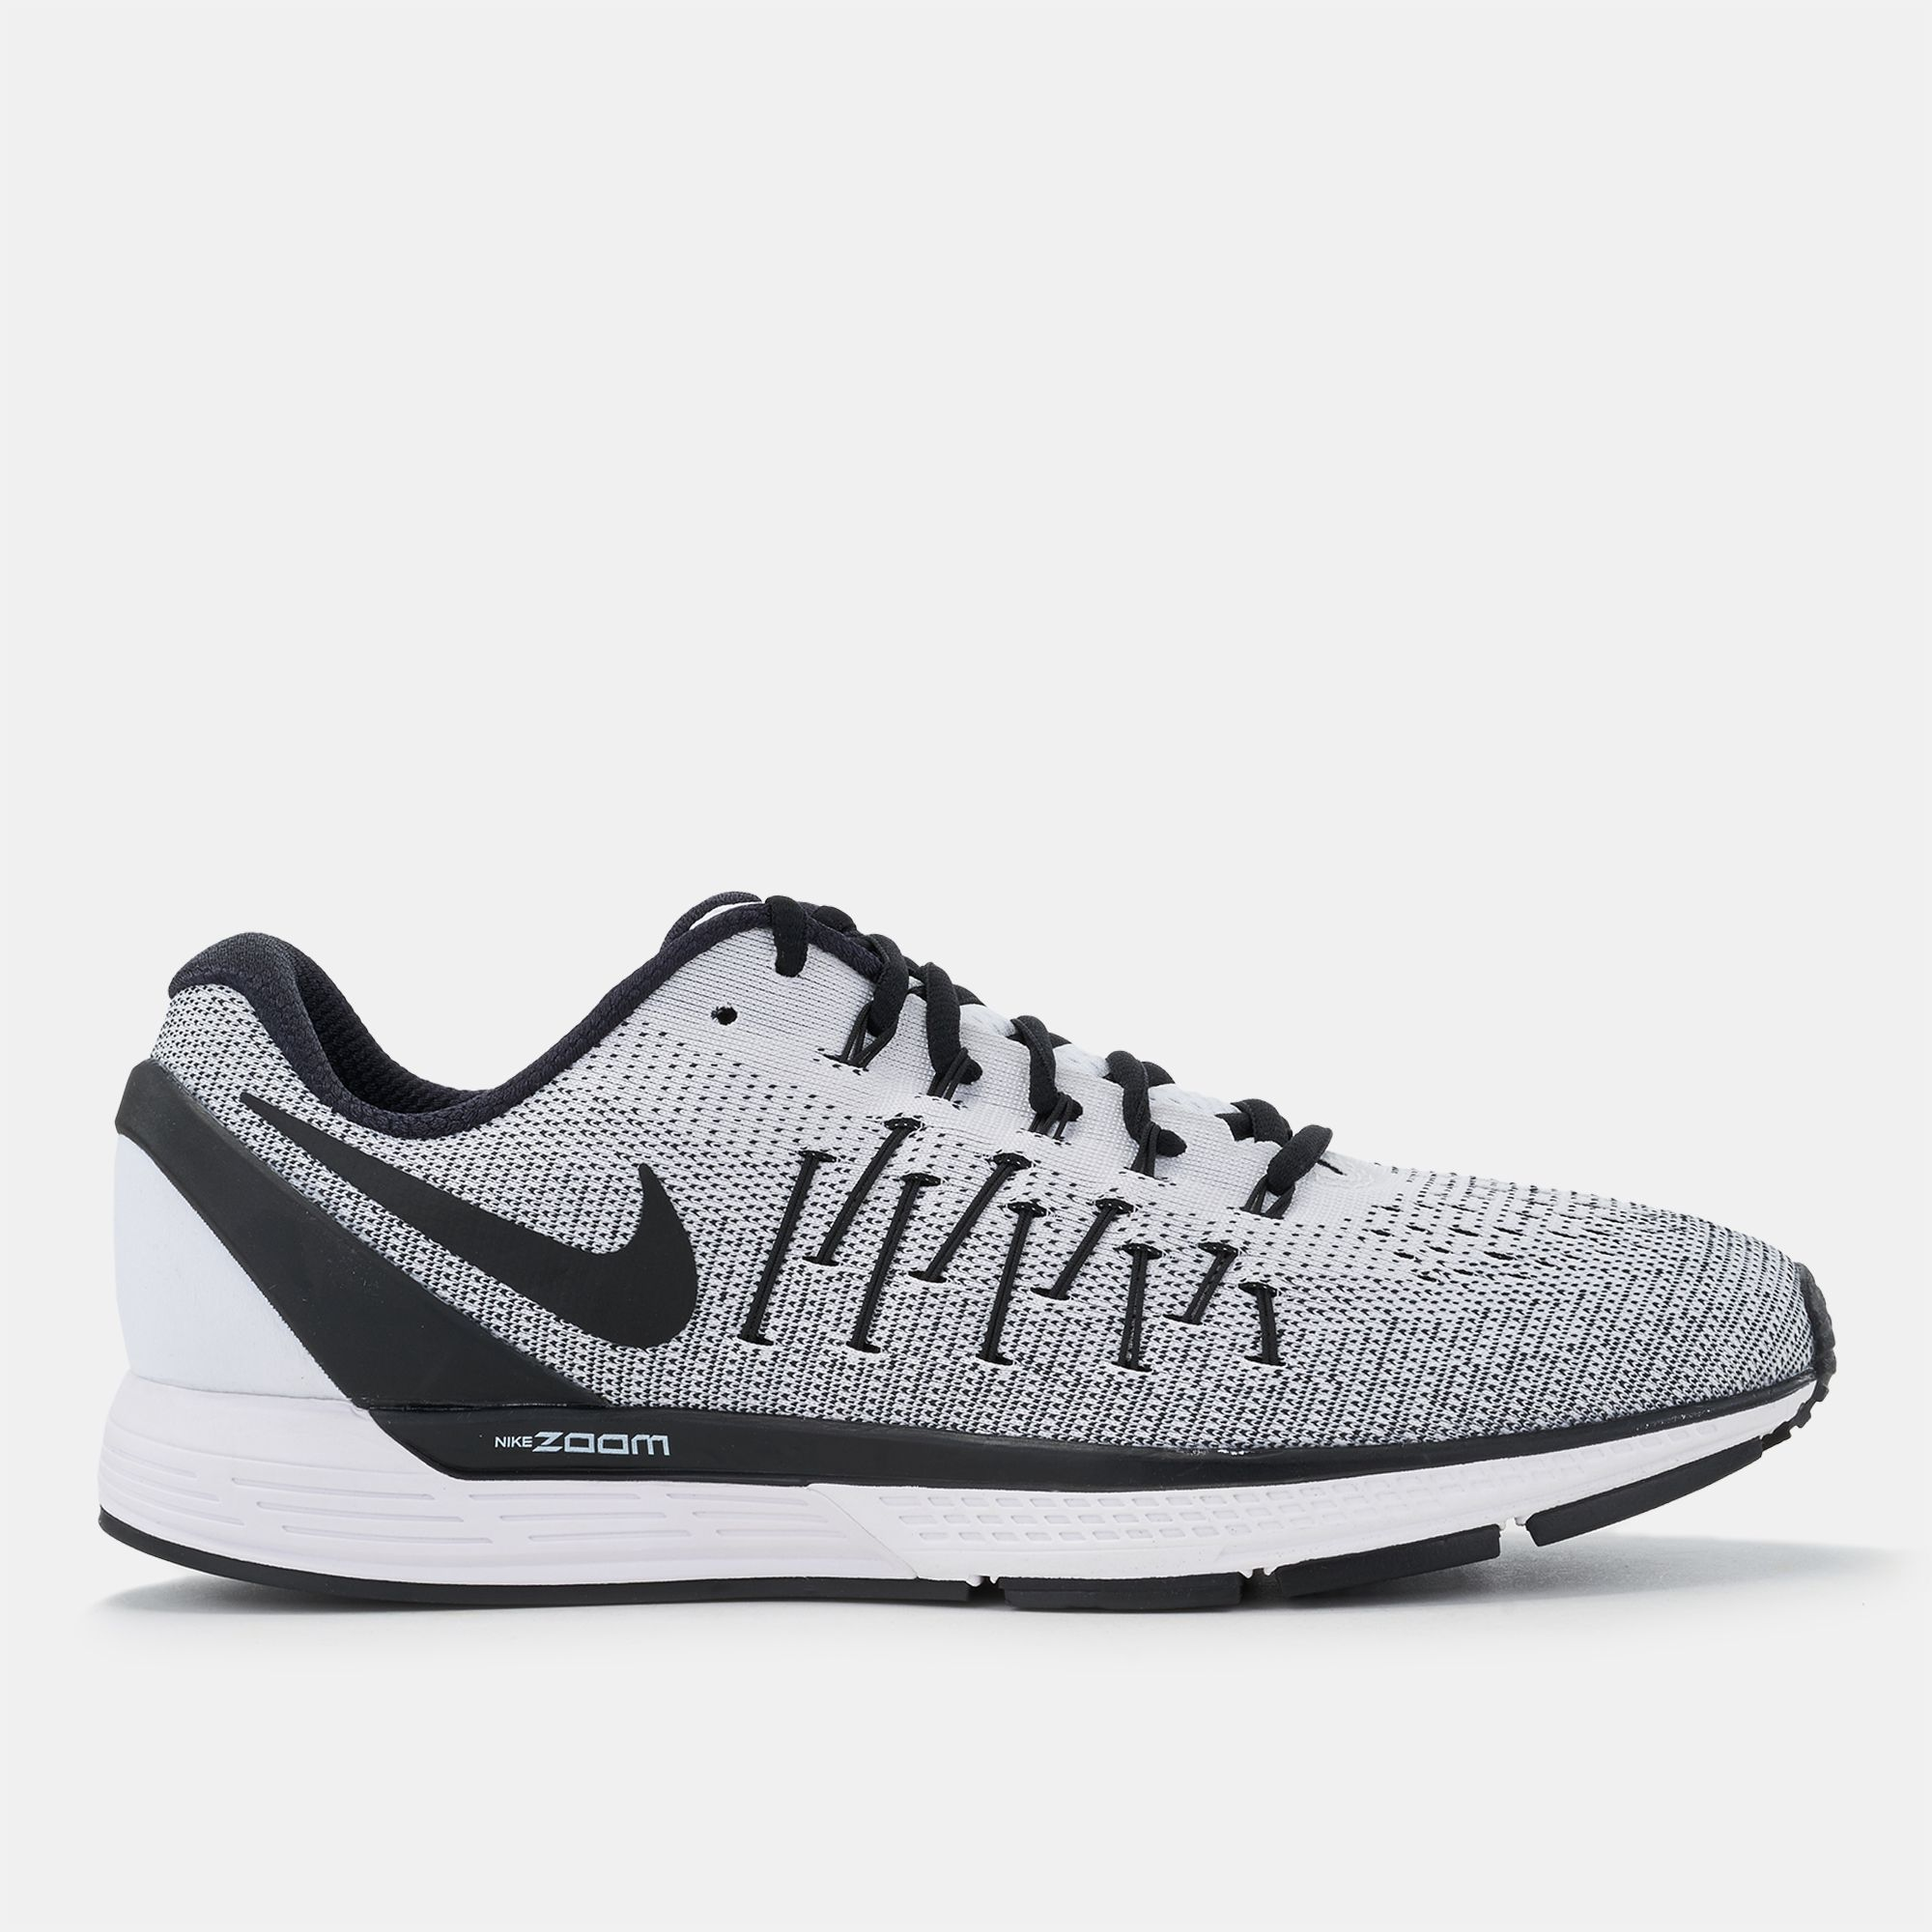 official photos ffe4c 8ee68 ... amazon nike air zoom odyssey 2 mens shoe eb055 b53d8